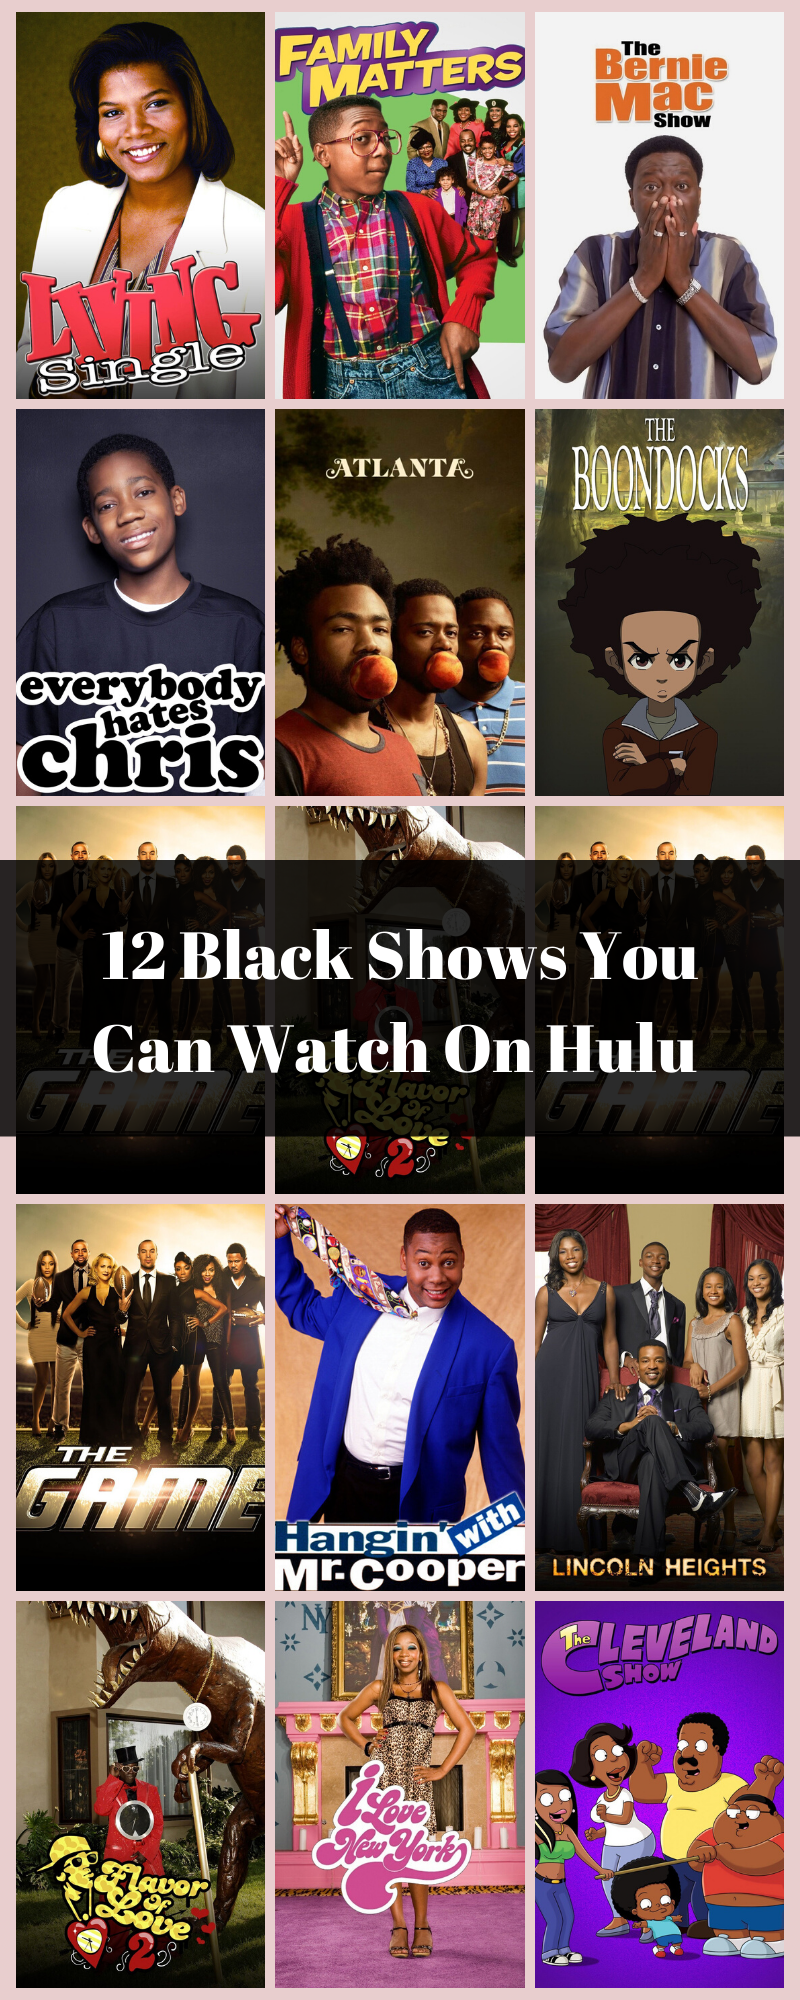 12 Black Shows On Hulu You Probably Didn T Know Were There In 2020 Family Matters Hulu Trending Music